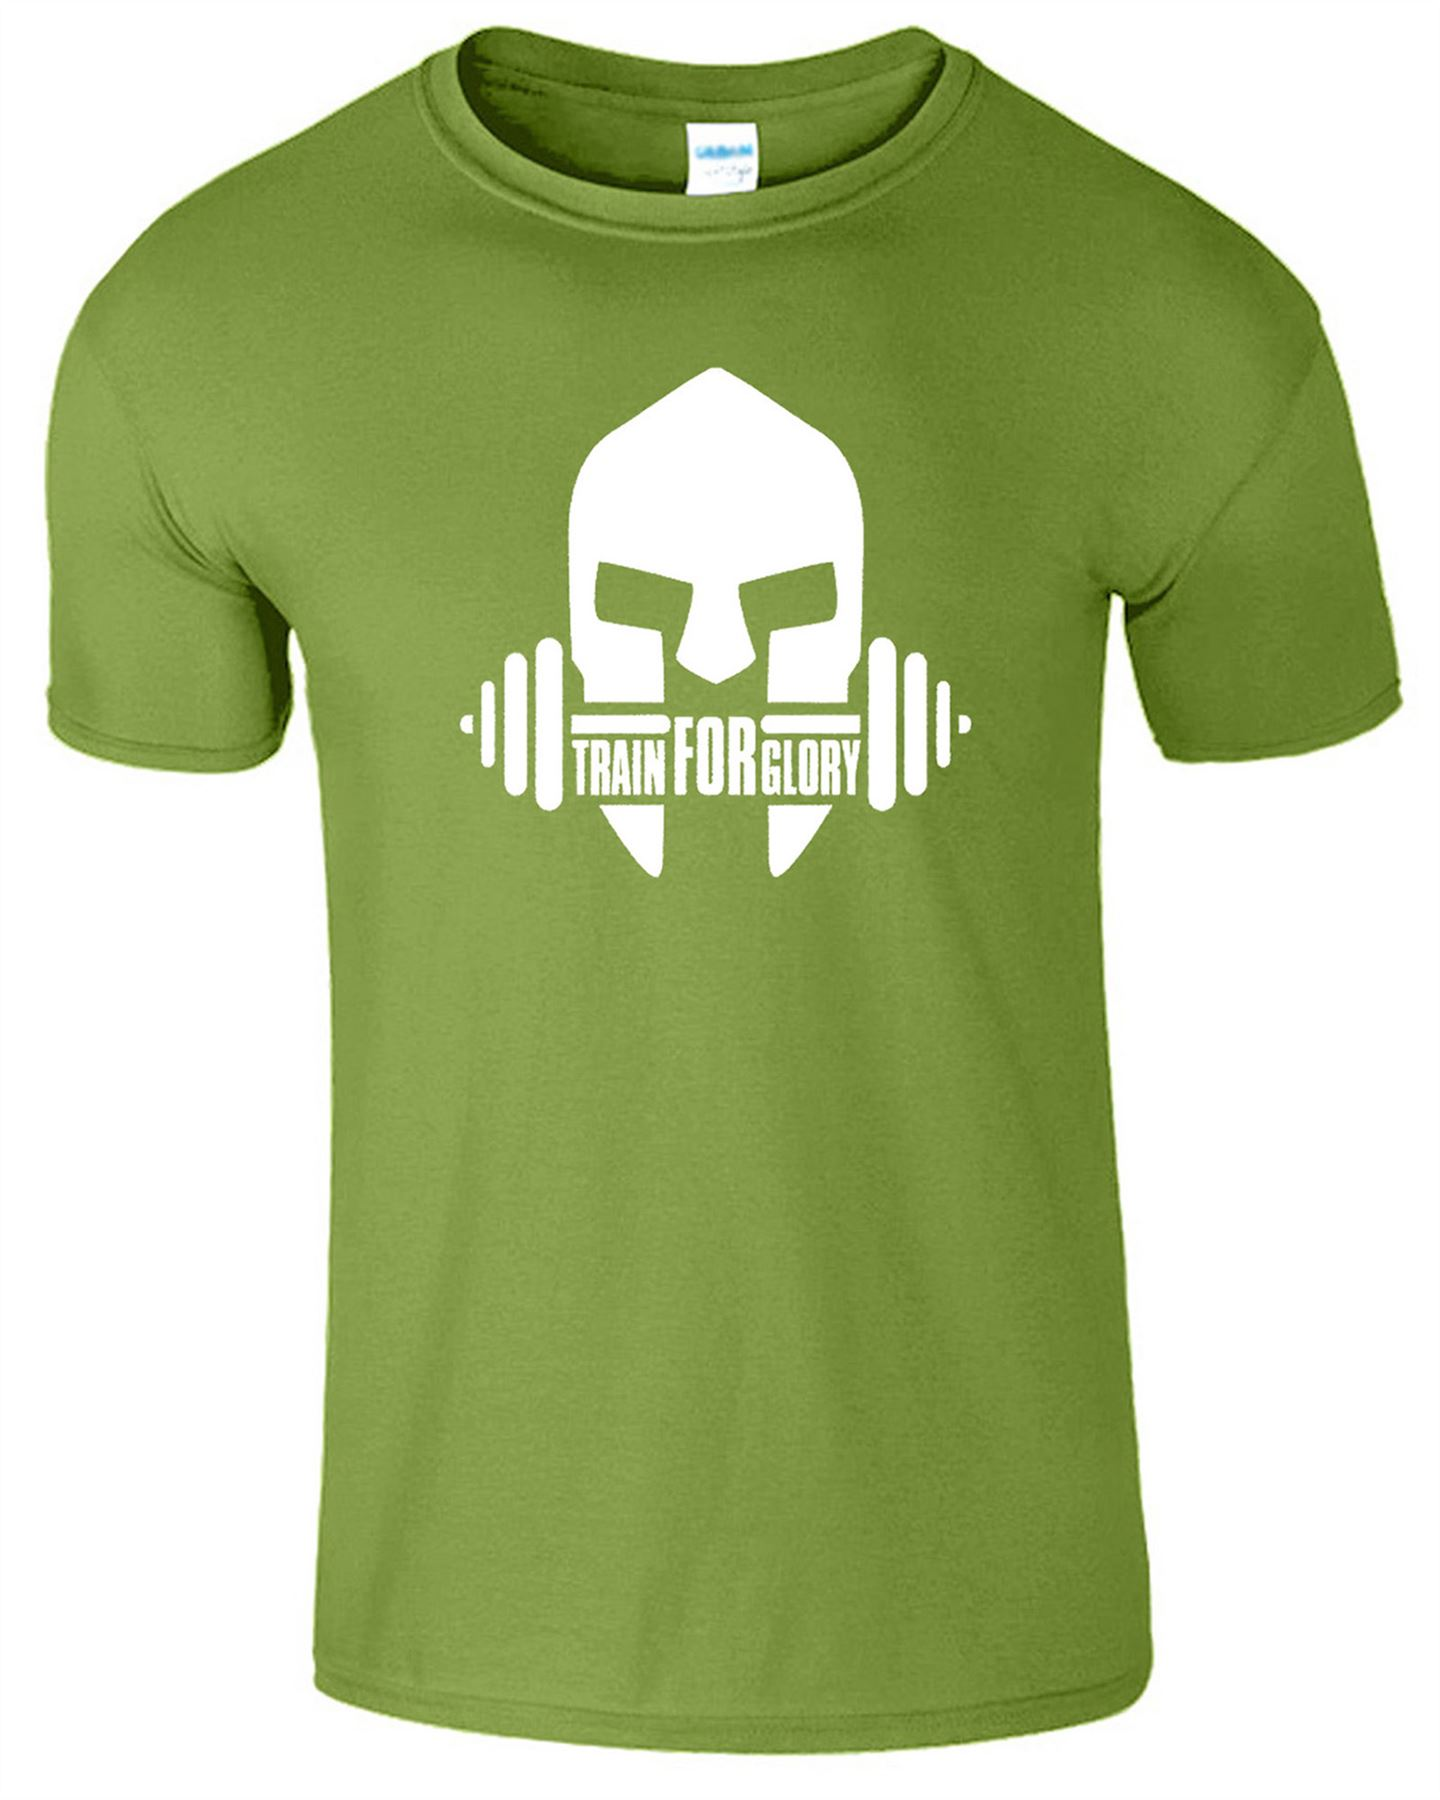 Train for glory t shirt mens bodybuilding crossfit gym Fitness shirts for men